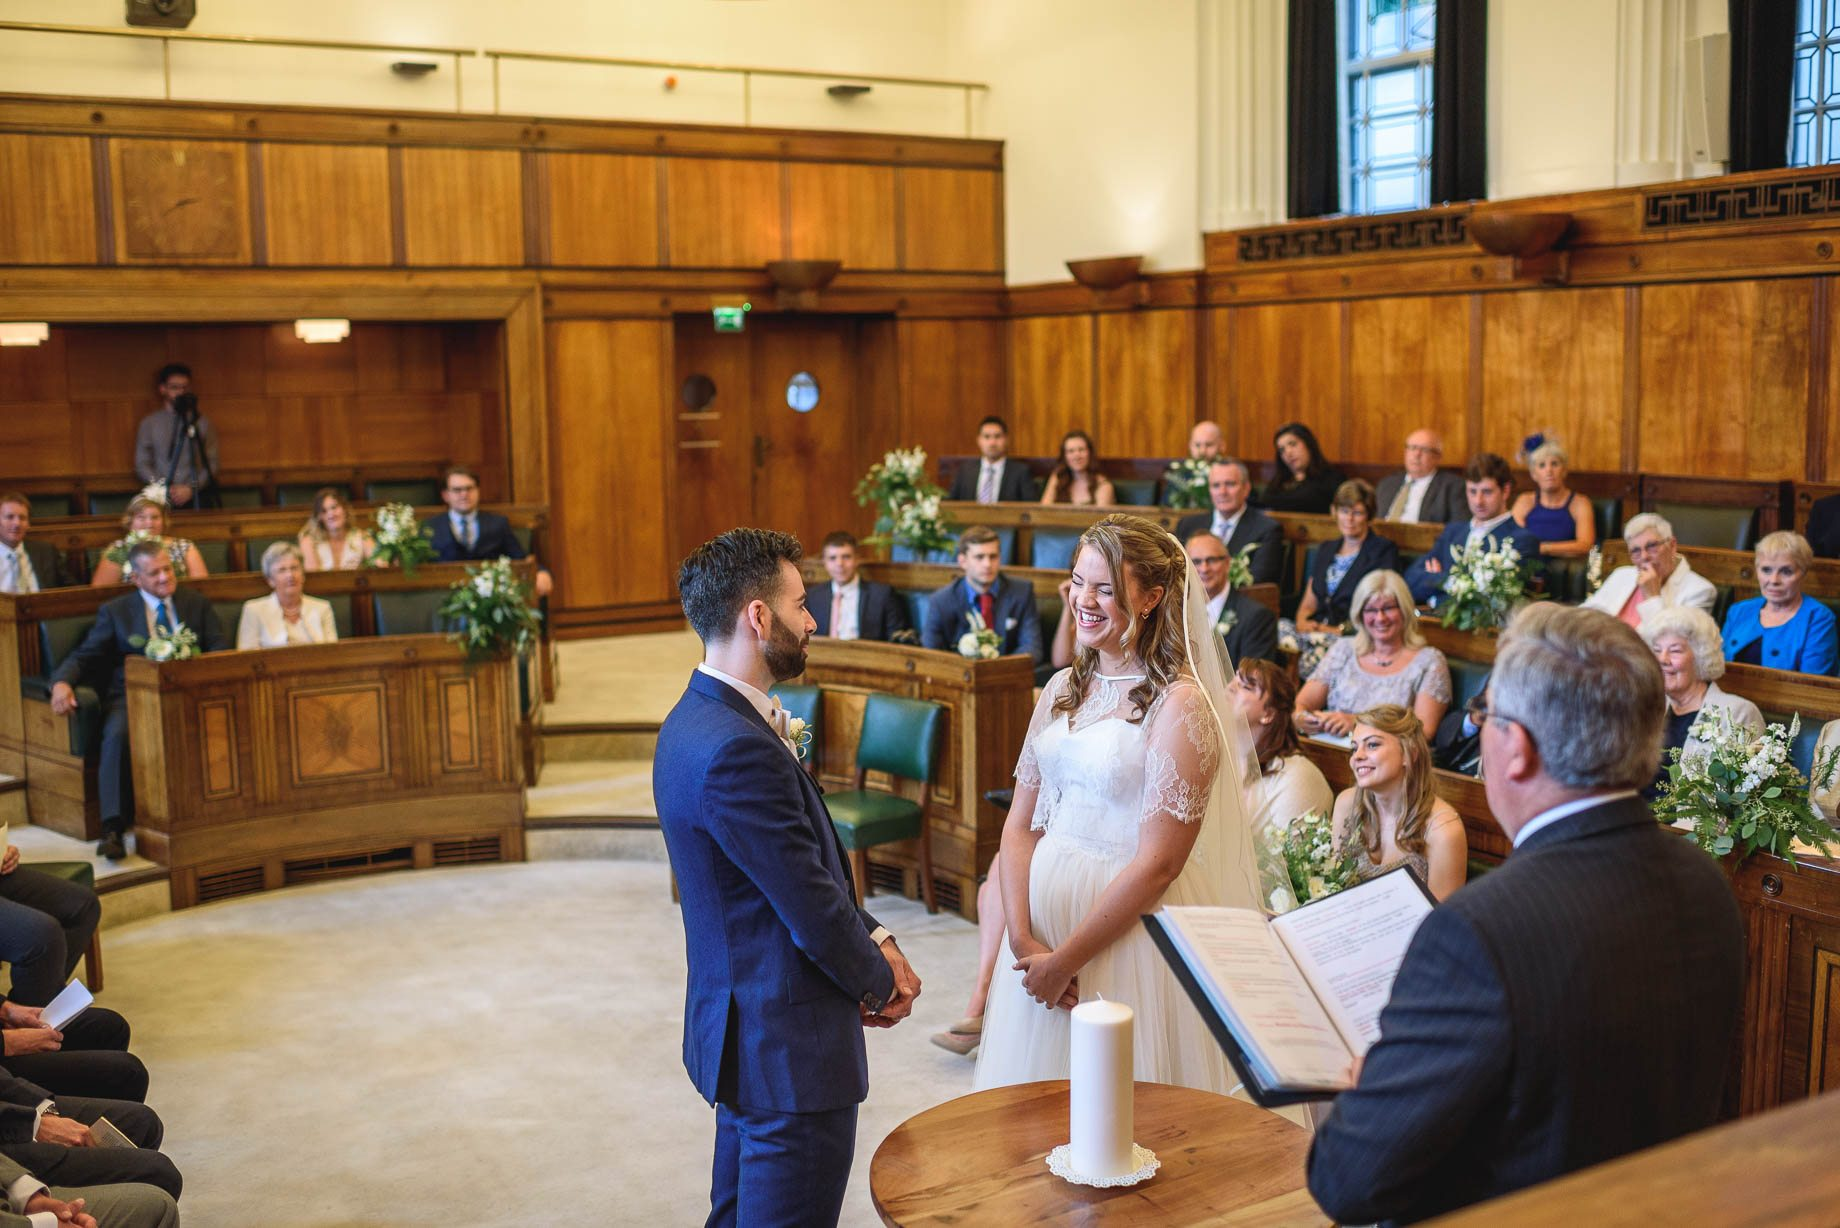 London Wedding Photography - Guy Collier Photography - LJ + Russell (54 of 155)